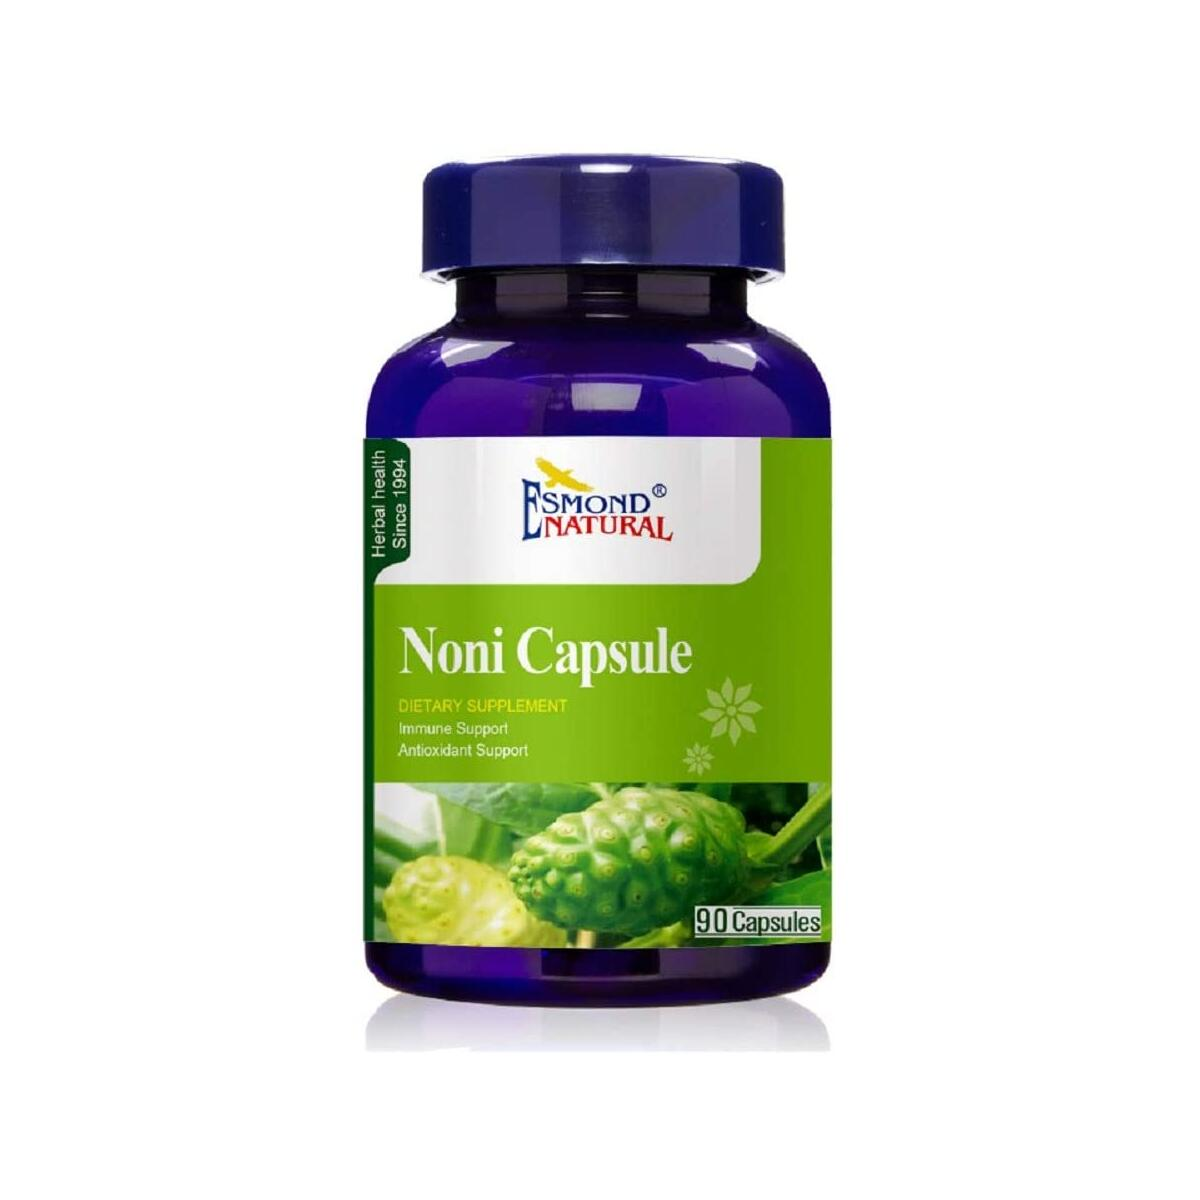 Esmond Natural: Noni Capsule (Immune Support, Antioxidant Support), GMP, Natural Product Assn Certified, Made in USA-90 Capsules